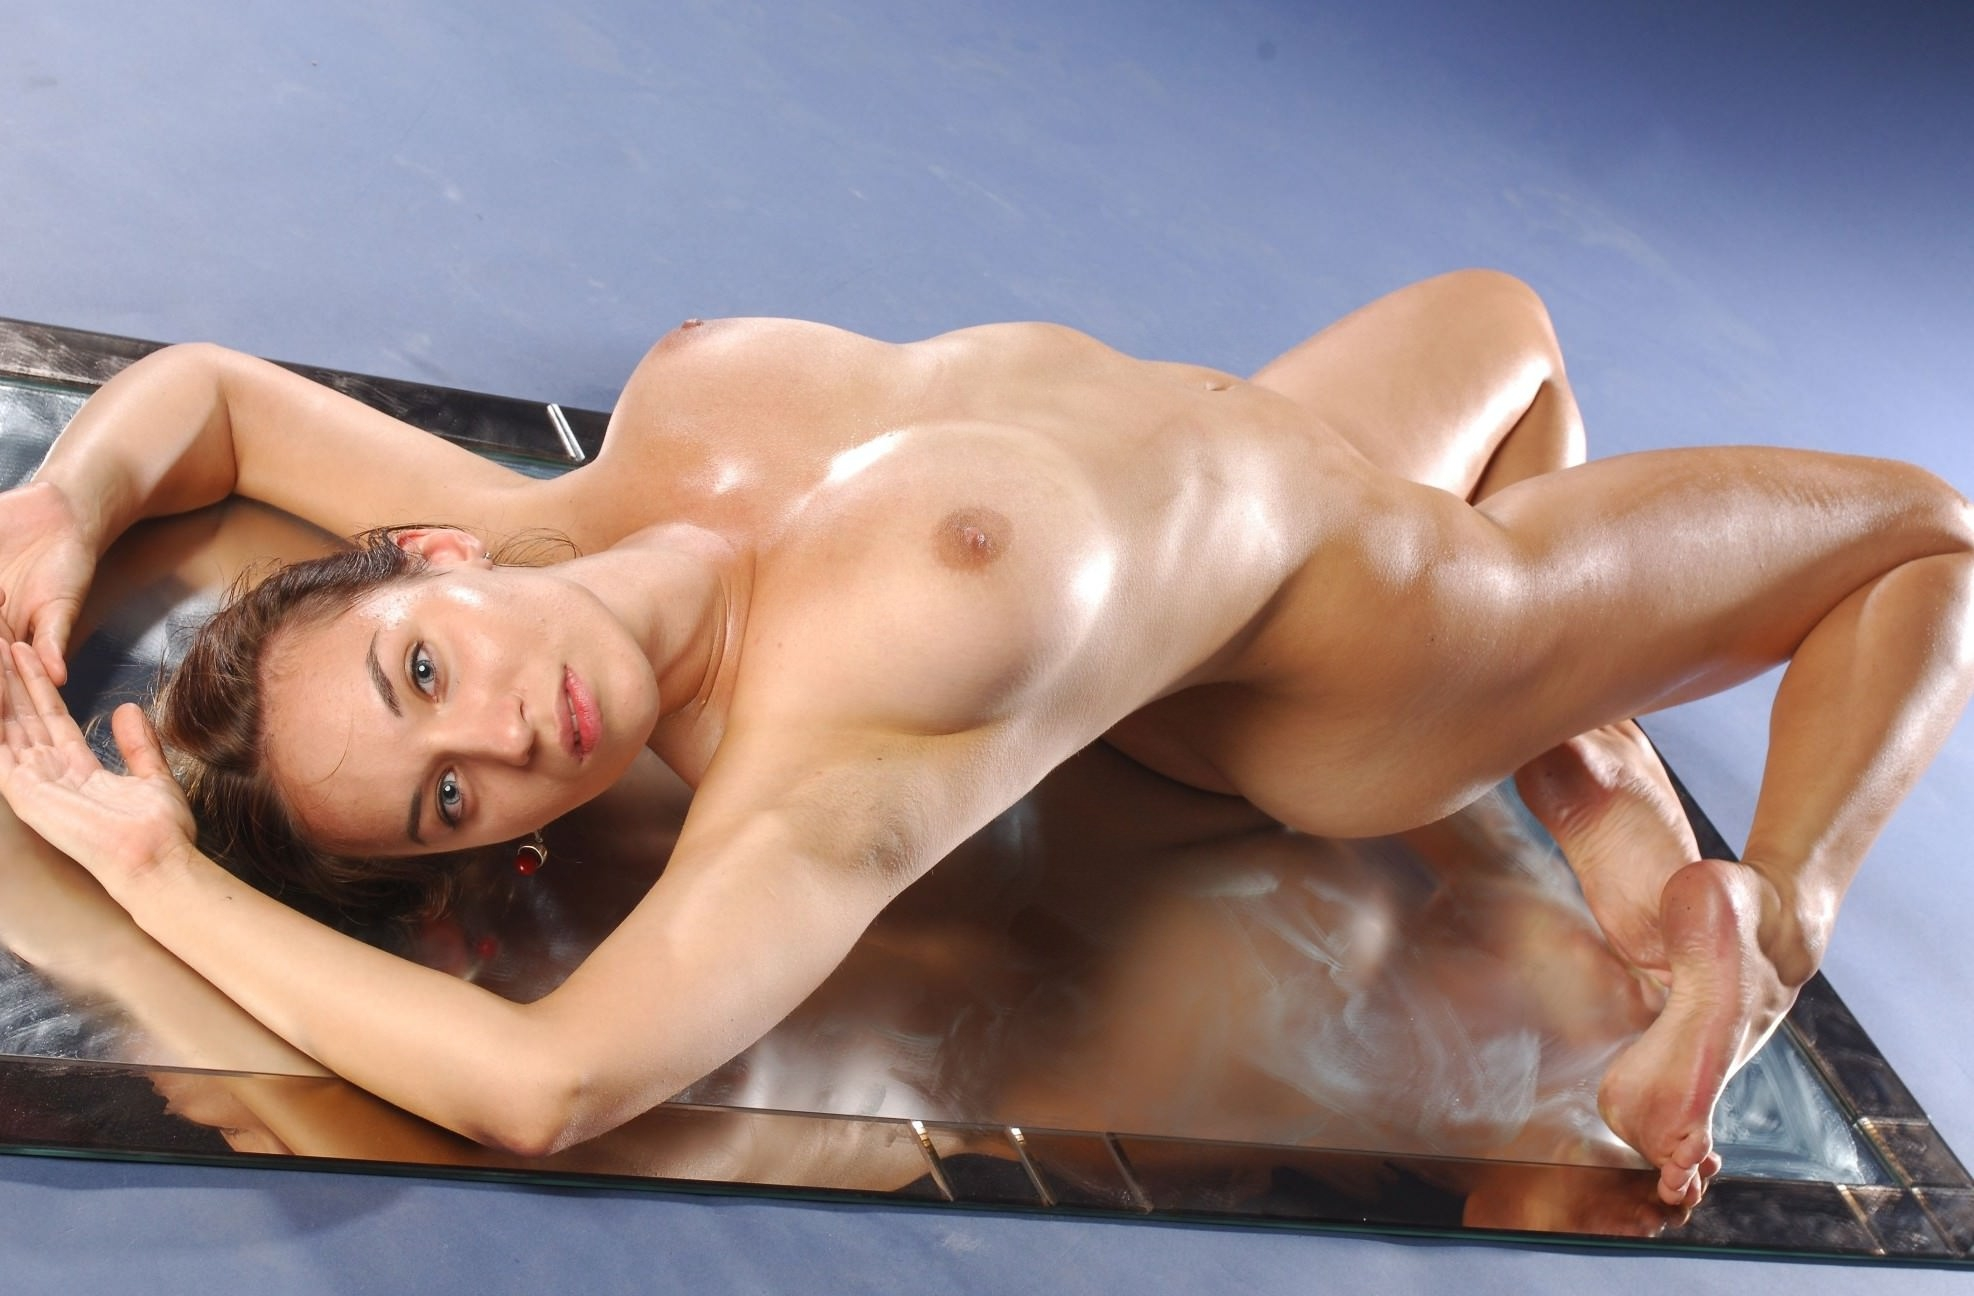 Nude Mature Hot Wimen